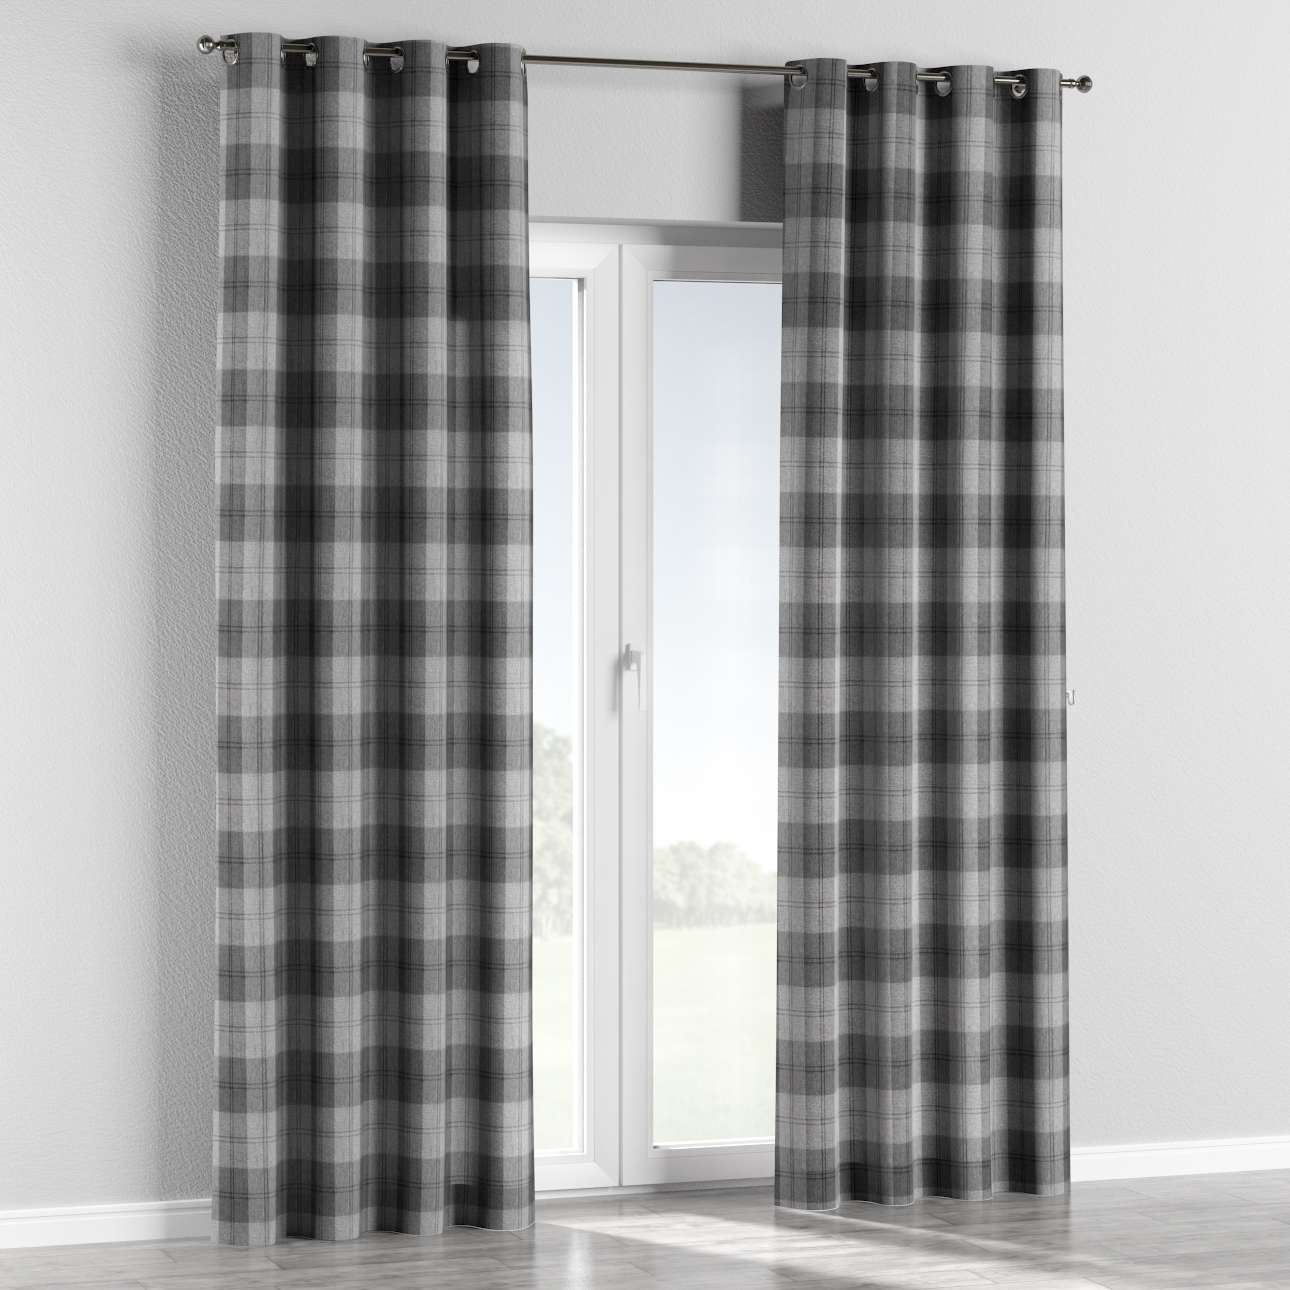 Eyelet curtains 130 x 260 cm (51 x 102 inch) in collection Edinburgh , fabric: 115-75